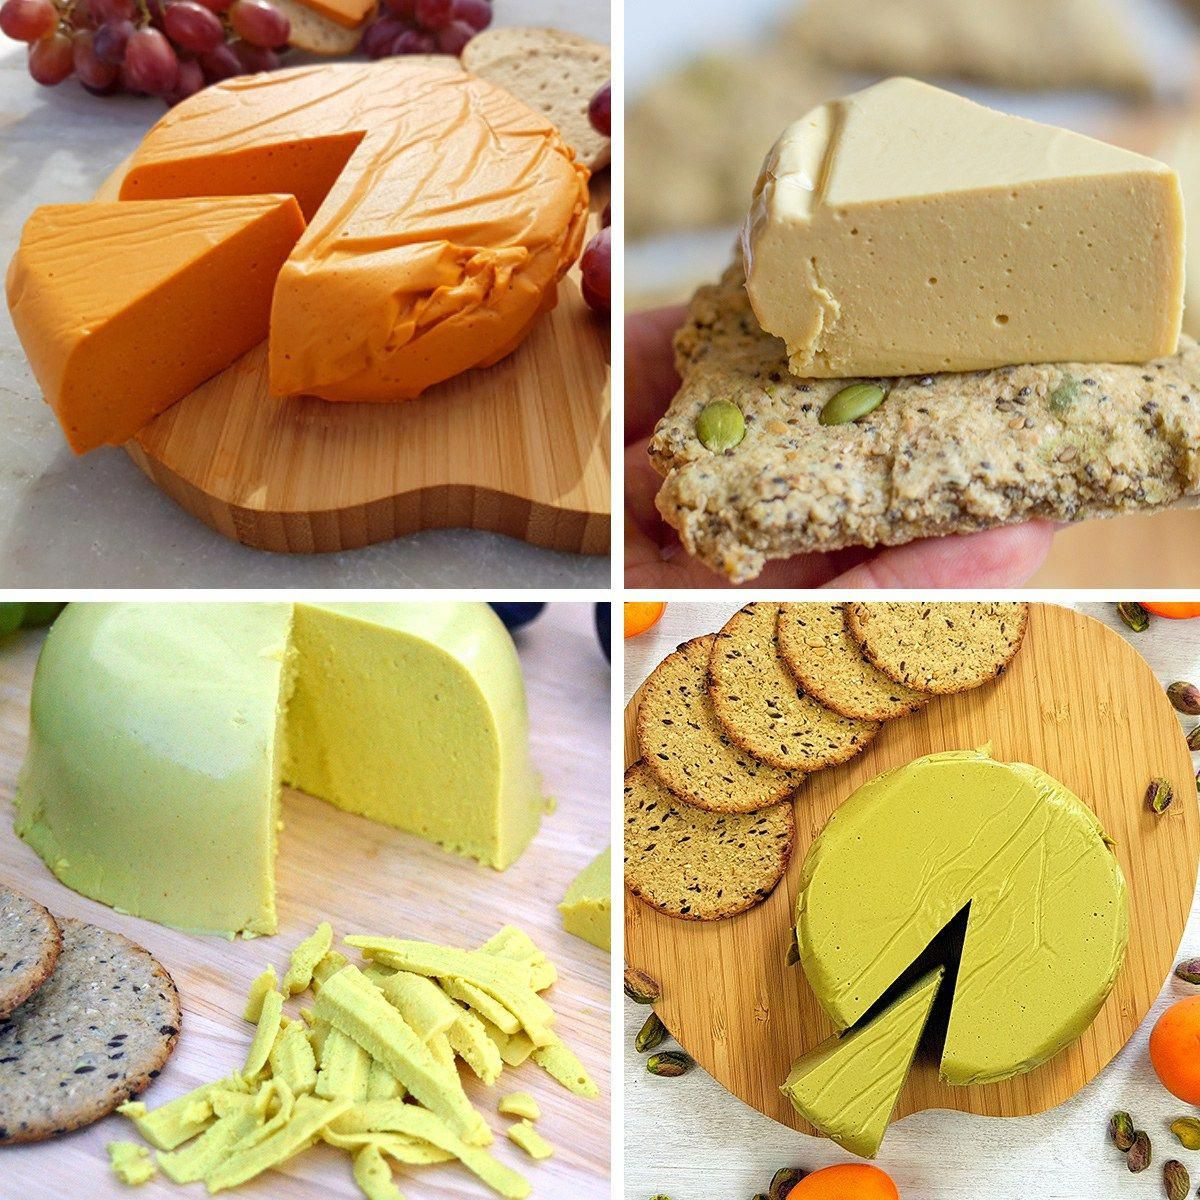 Amazing Vegan Firm Cheese Recipes Easy To Make Hard Vegan Cheese That Can Grate Slice And Melt Made Ou Vegan Cheese Recipes Easy Cheese Recipes Vegan Cheese